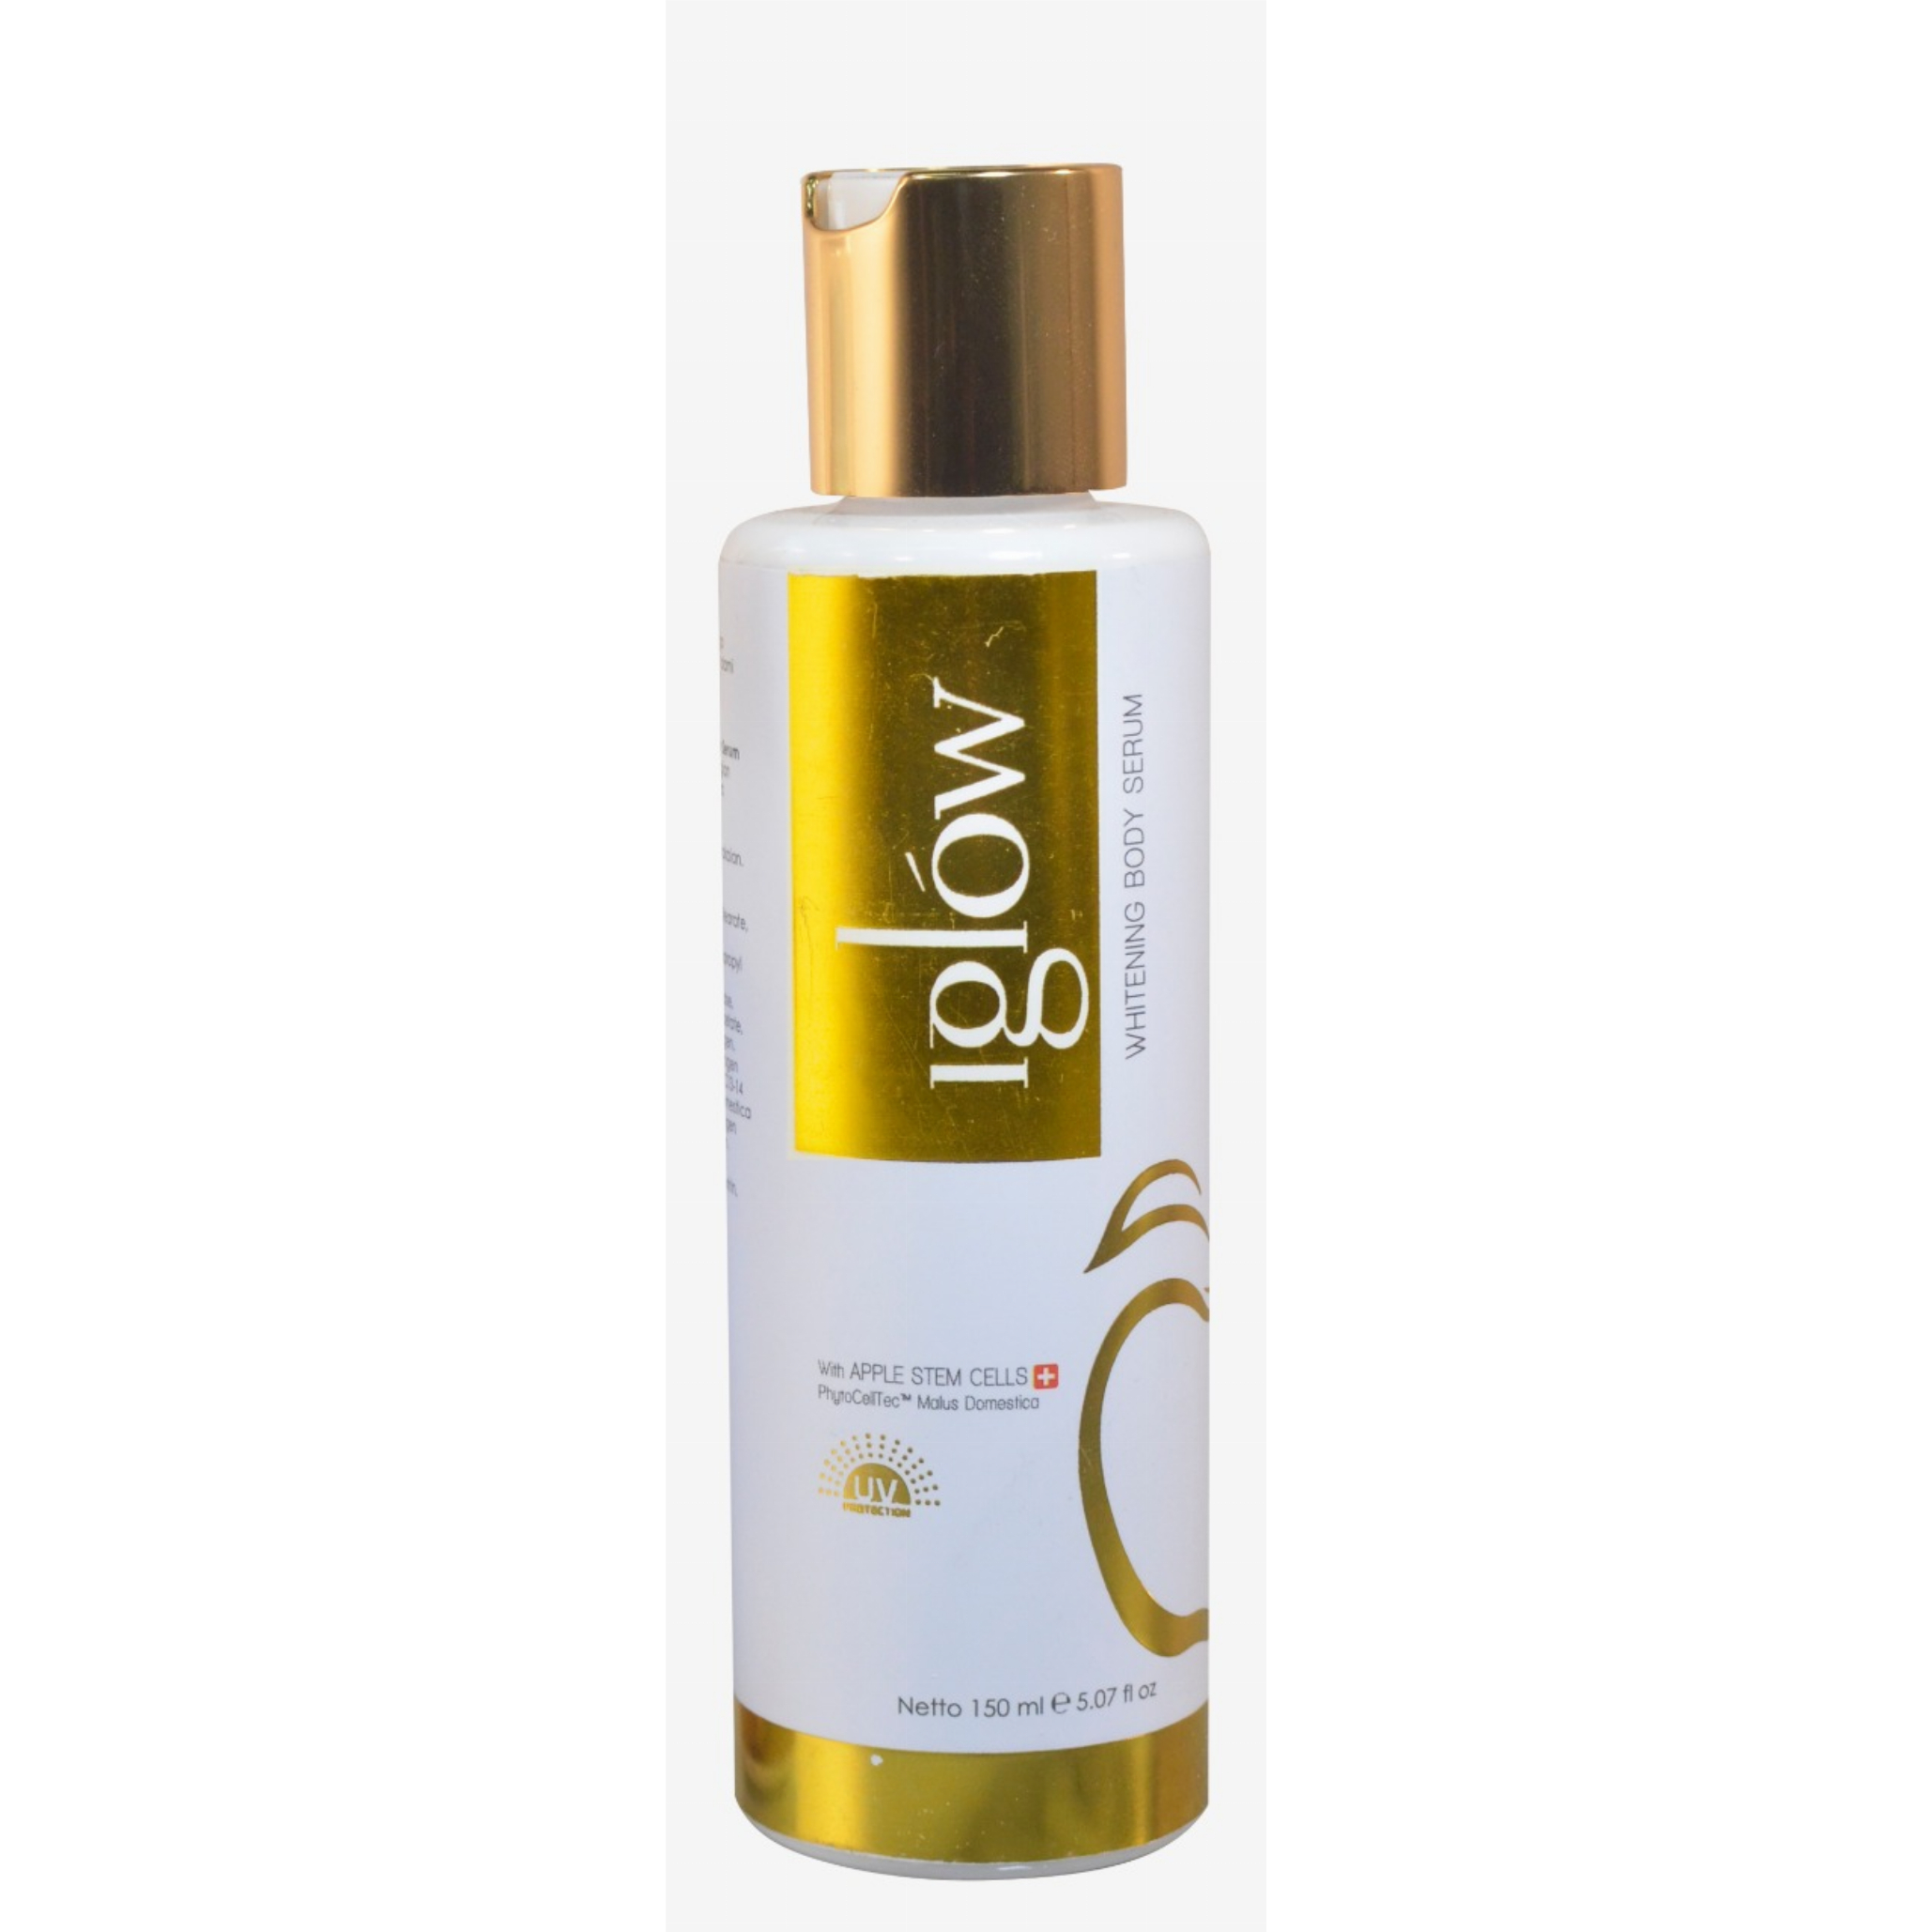 Lotion Whitening Body Serum | IGLOW0